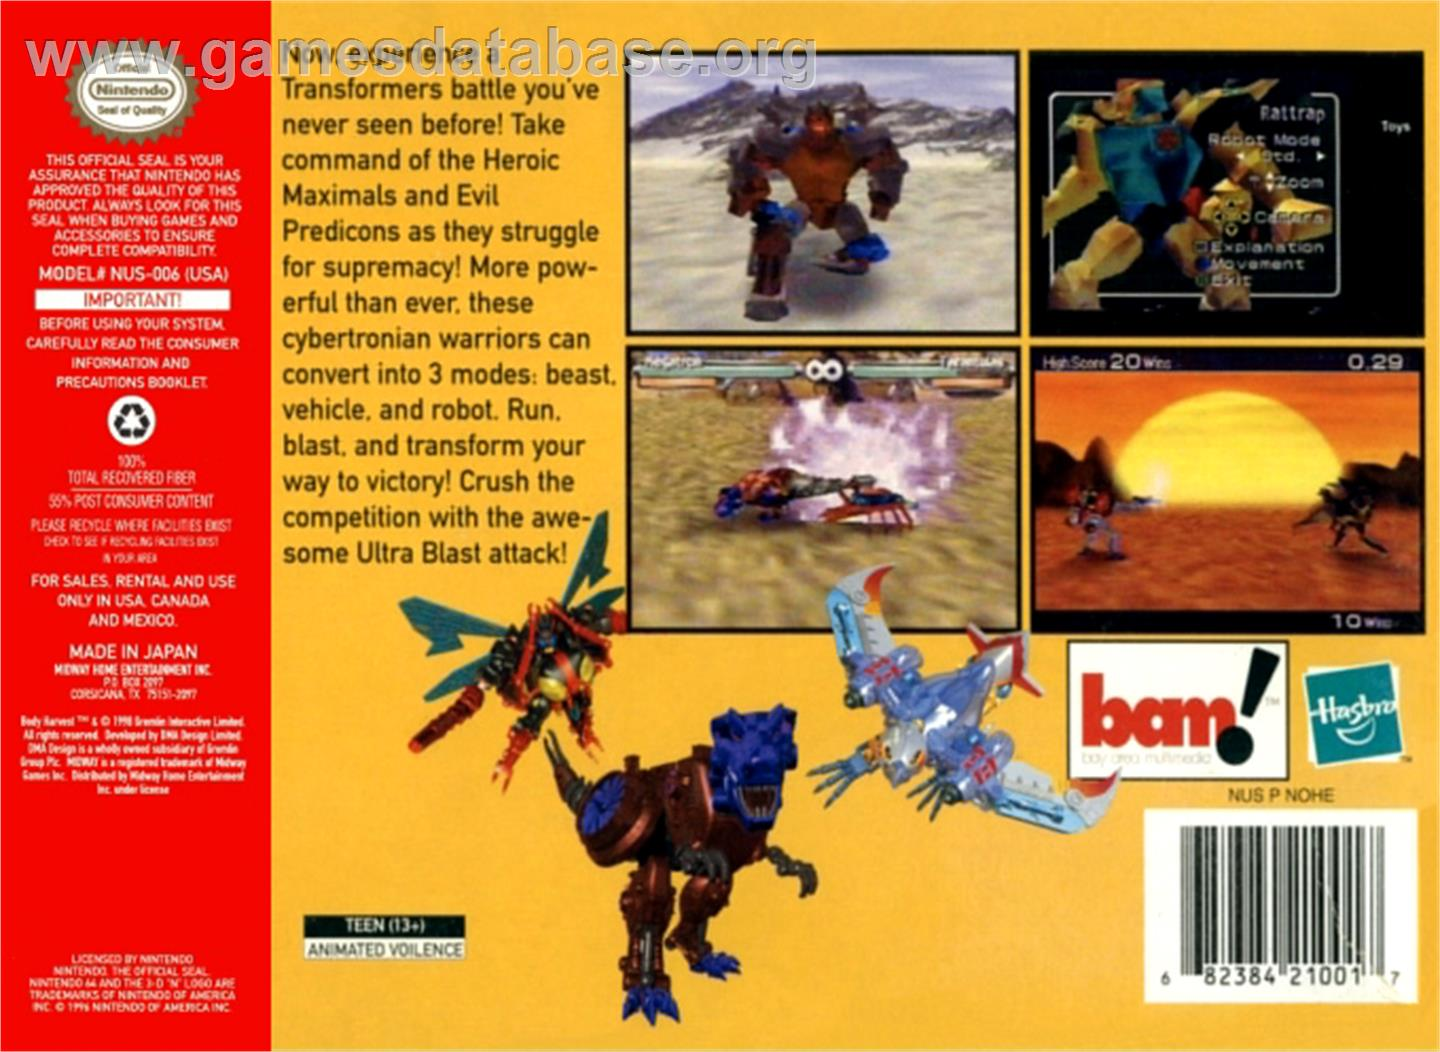 Transformers: Beast Wars Transmetals - Nintendo N64 - Artwork - Box Back